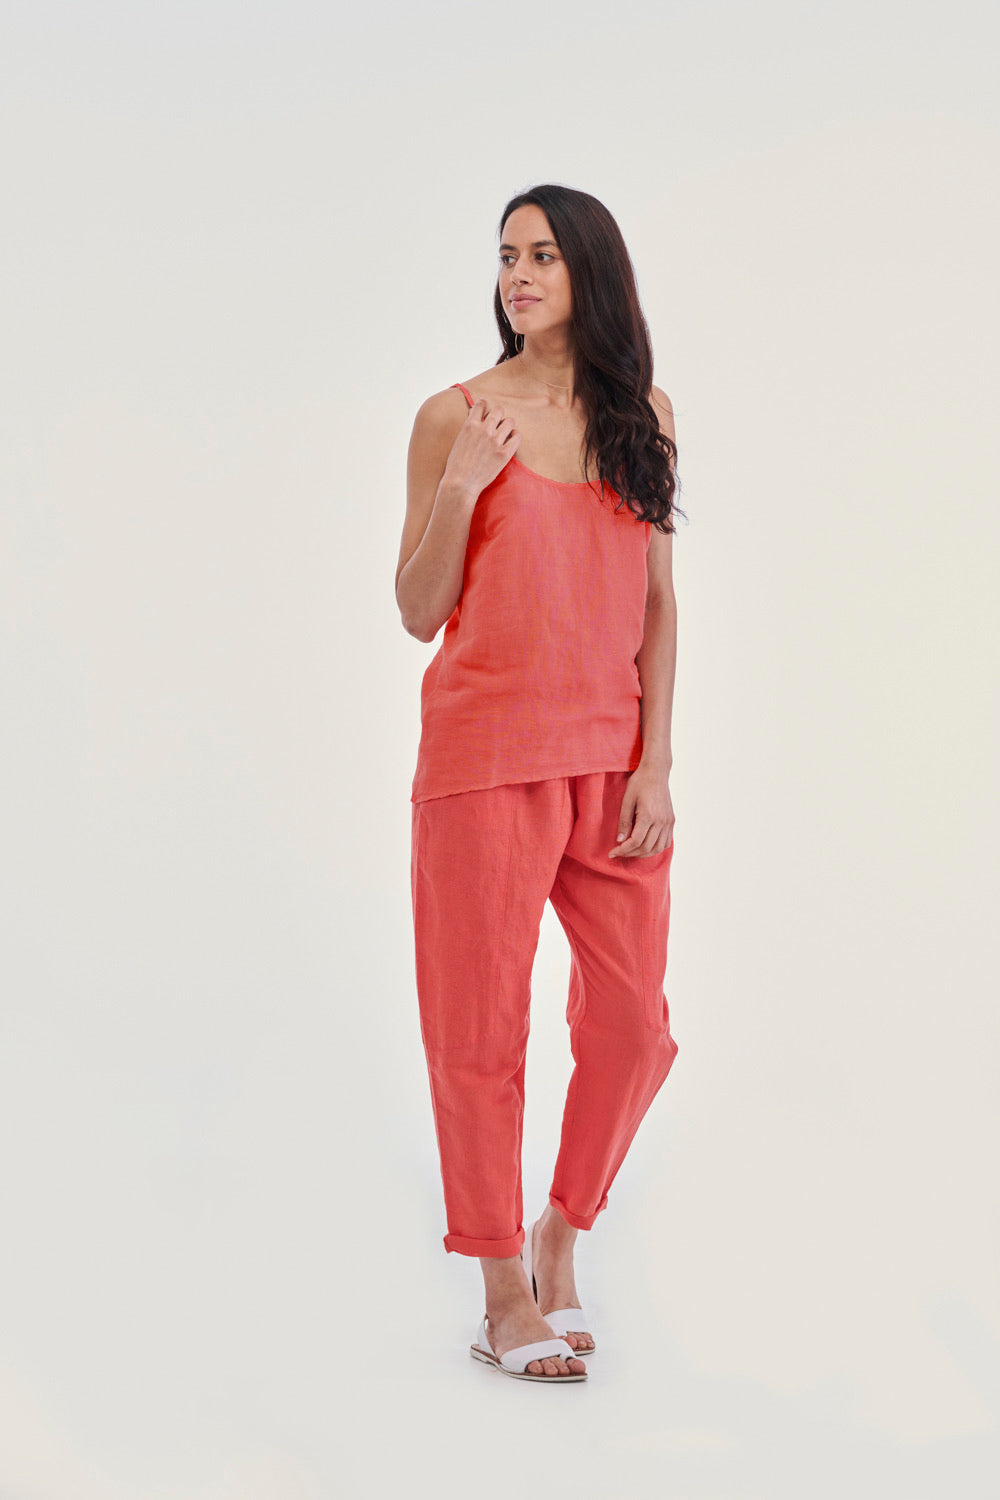 LuLu linen essentials Porto Cami Sunset Scarlet